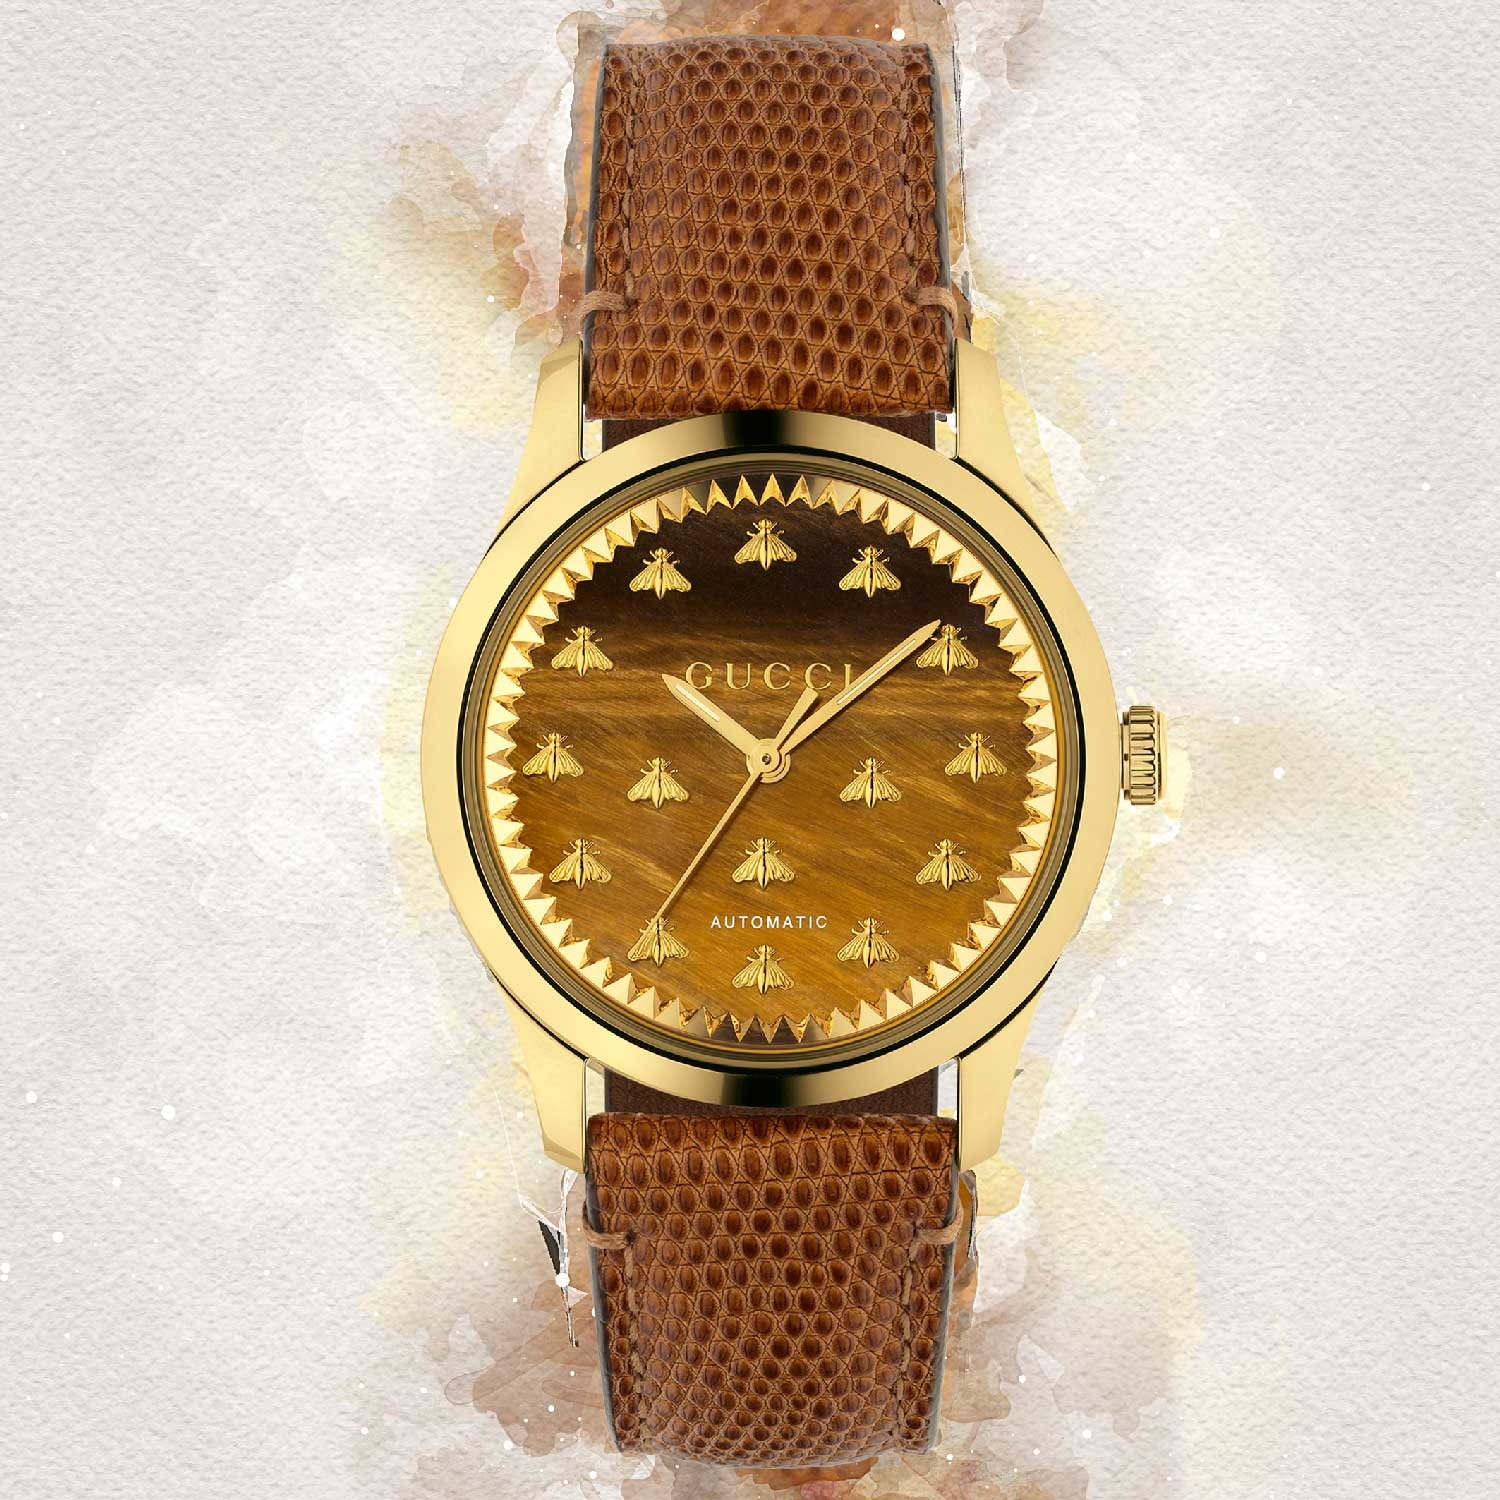 G-Timeless Automatic with bee motif